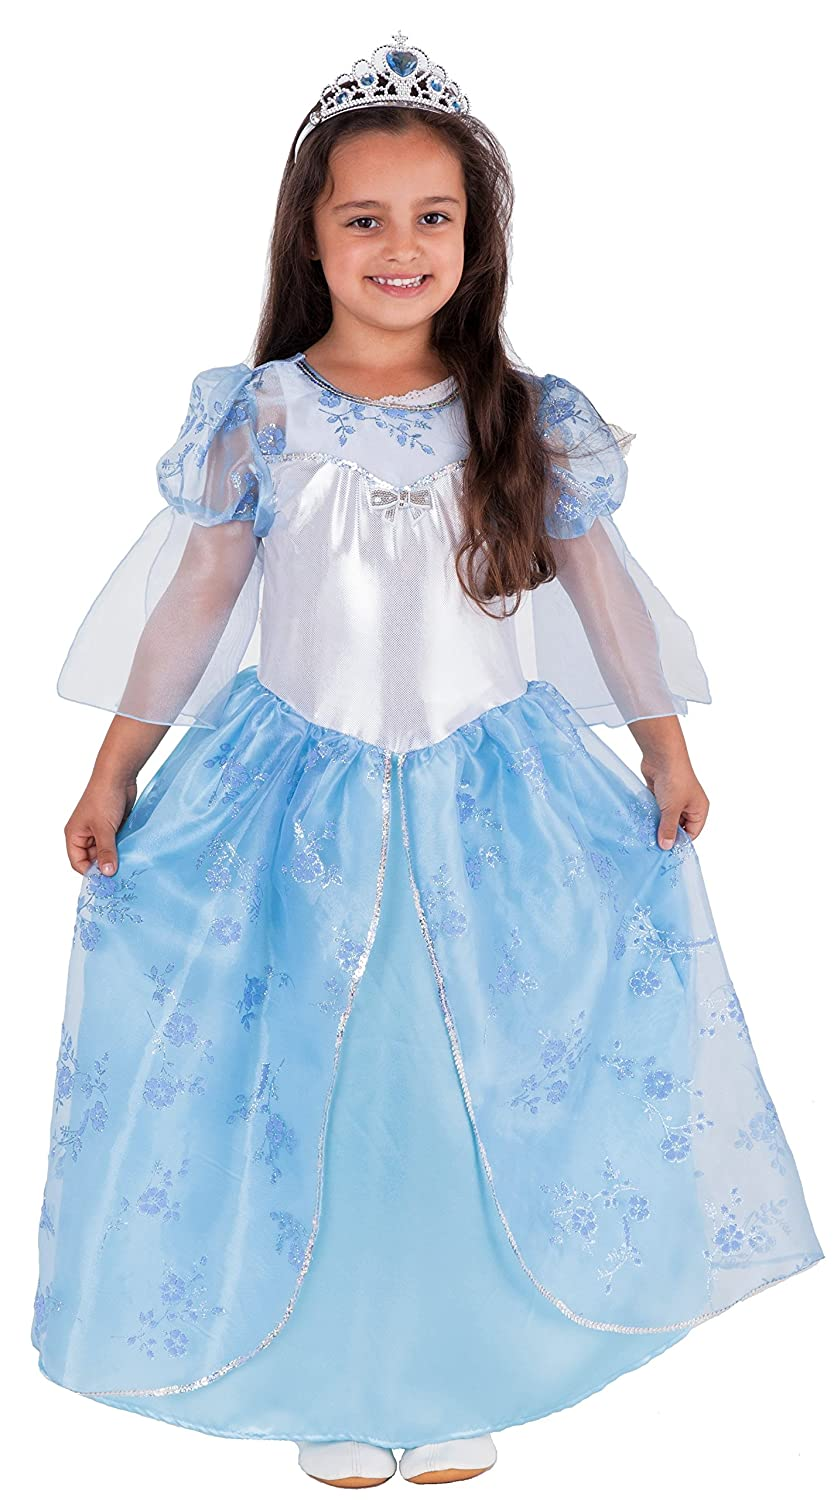 b047e6994288e Winter Fairy Tale Princess Costume for Kids blue Frozen Complete with  Tiara/Crown Snow Princess Fancy Dress Costume Girls Queen Princess Dress  for Girls ...